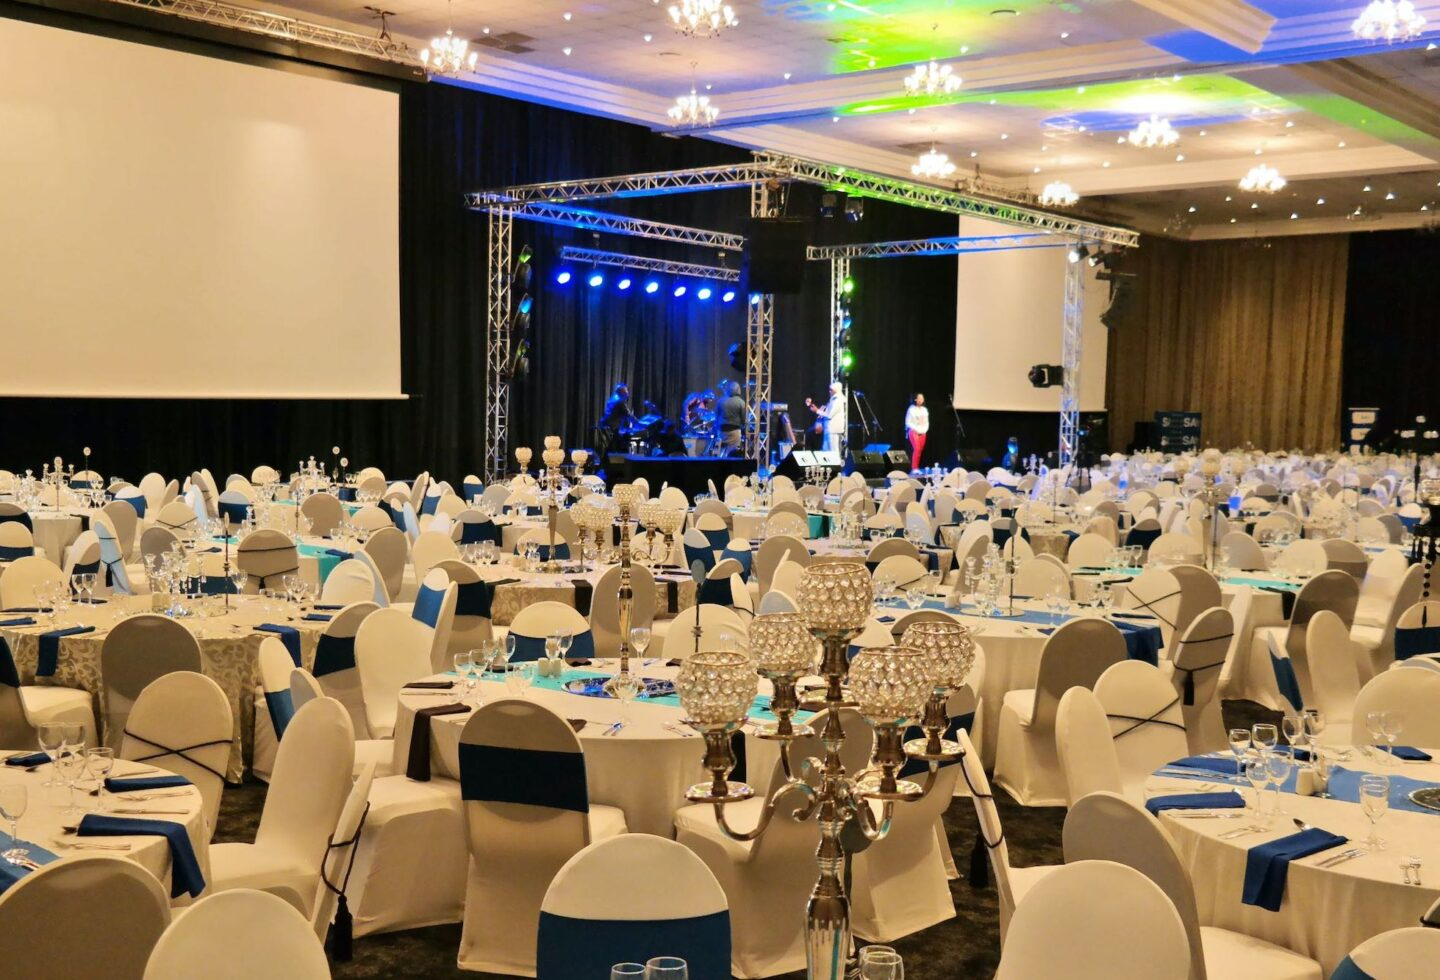 birchwood OR tambo centre with projector screen and set dining tables